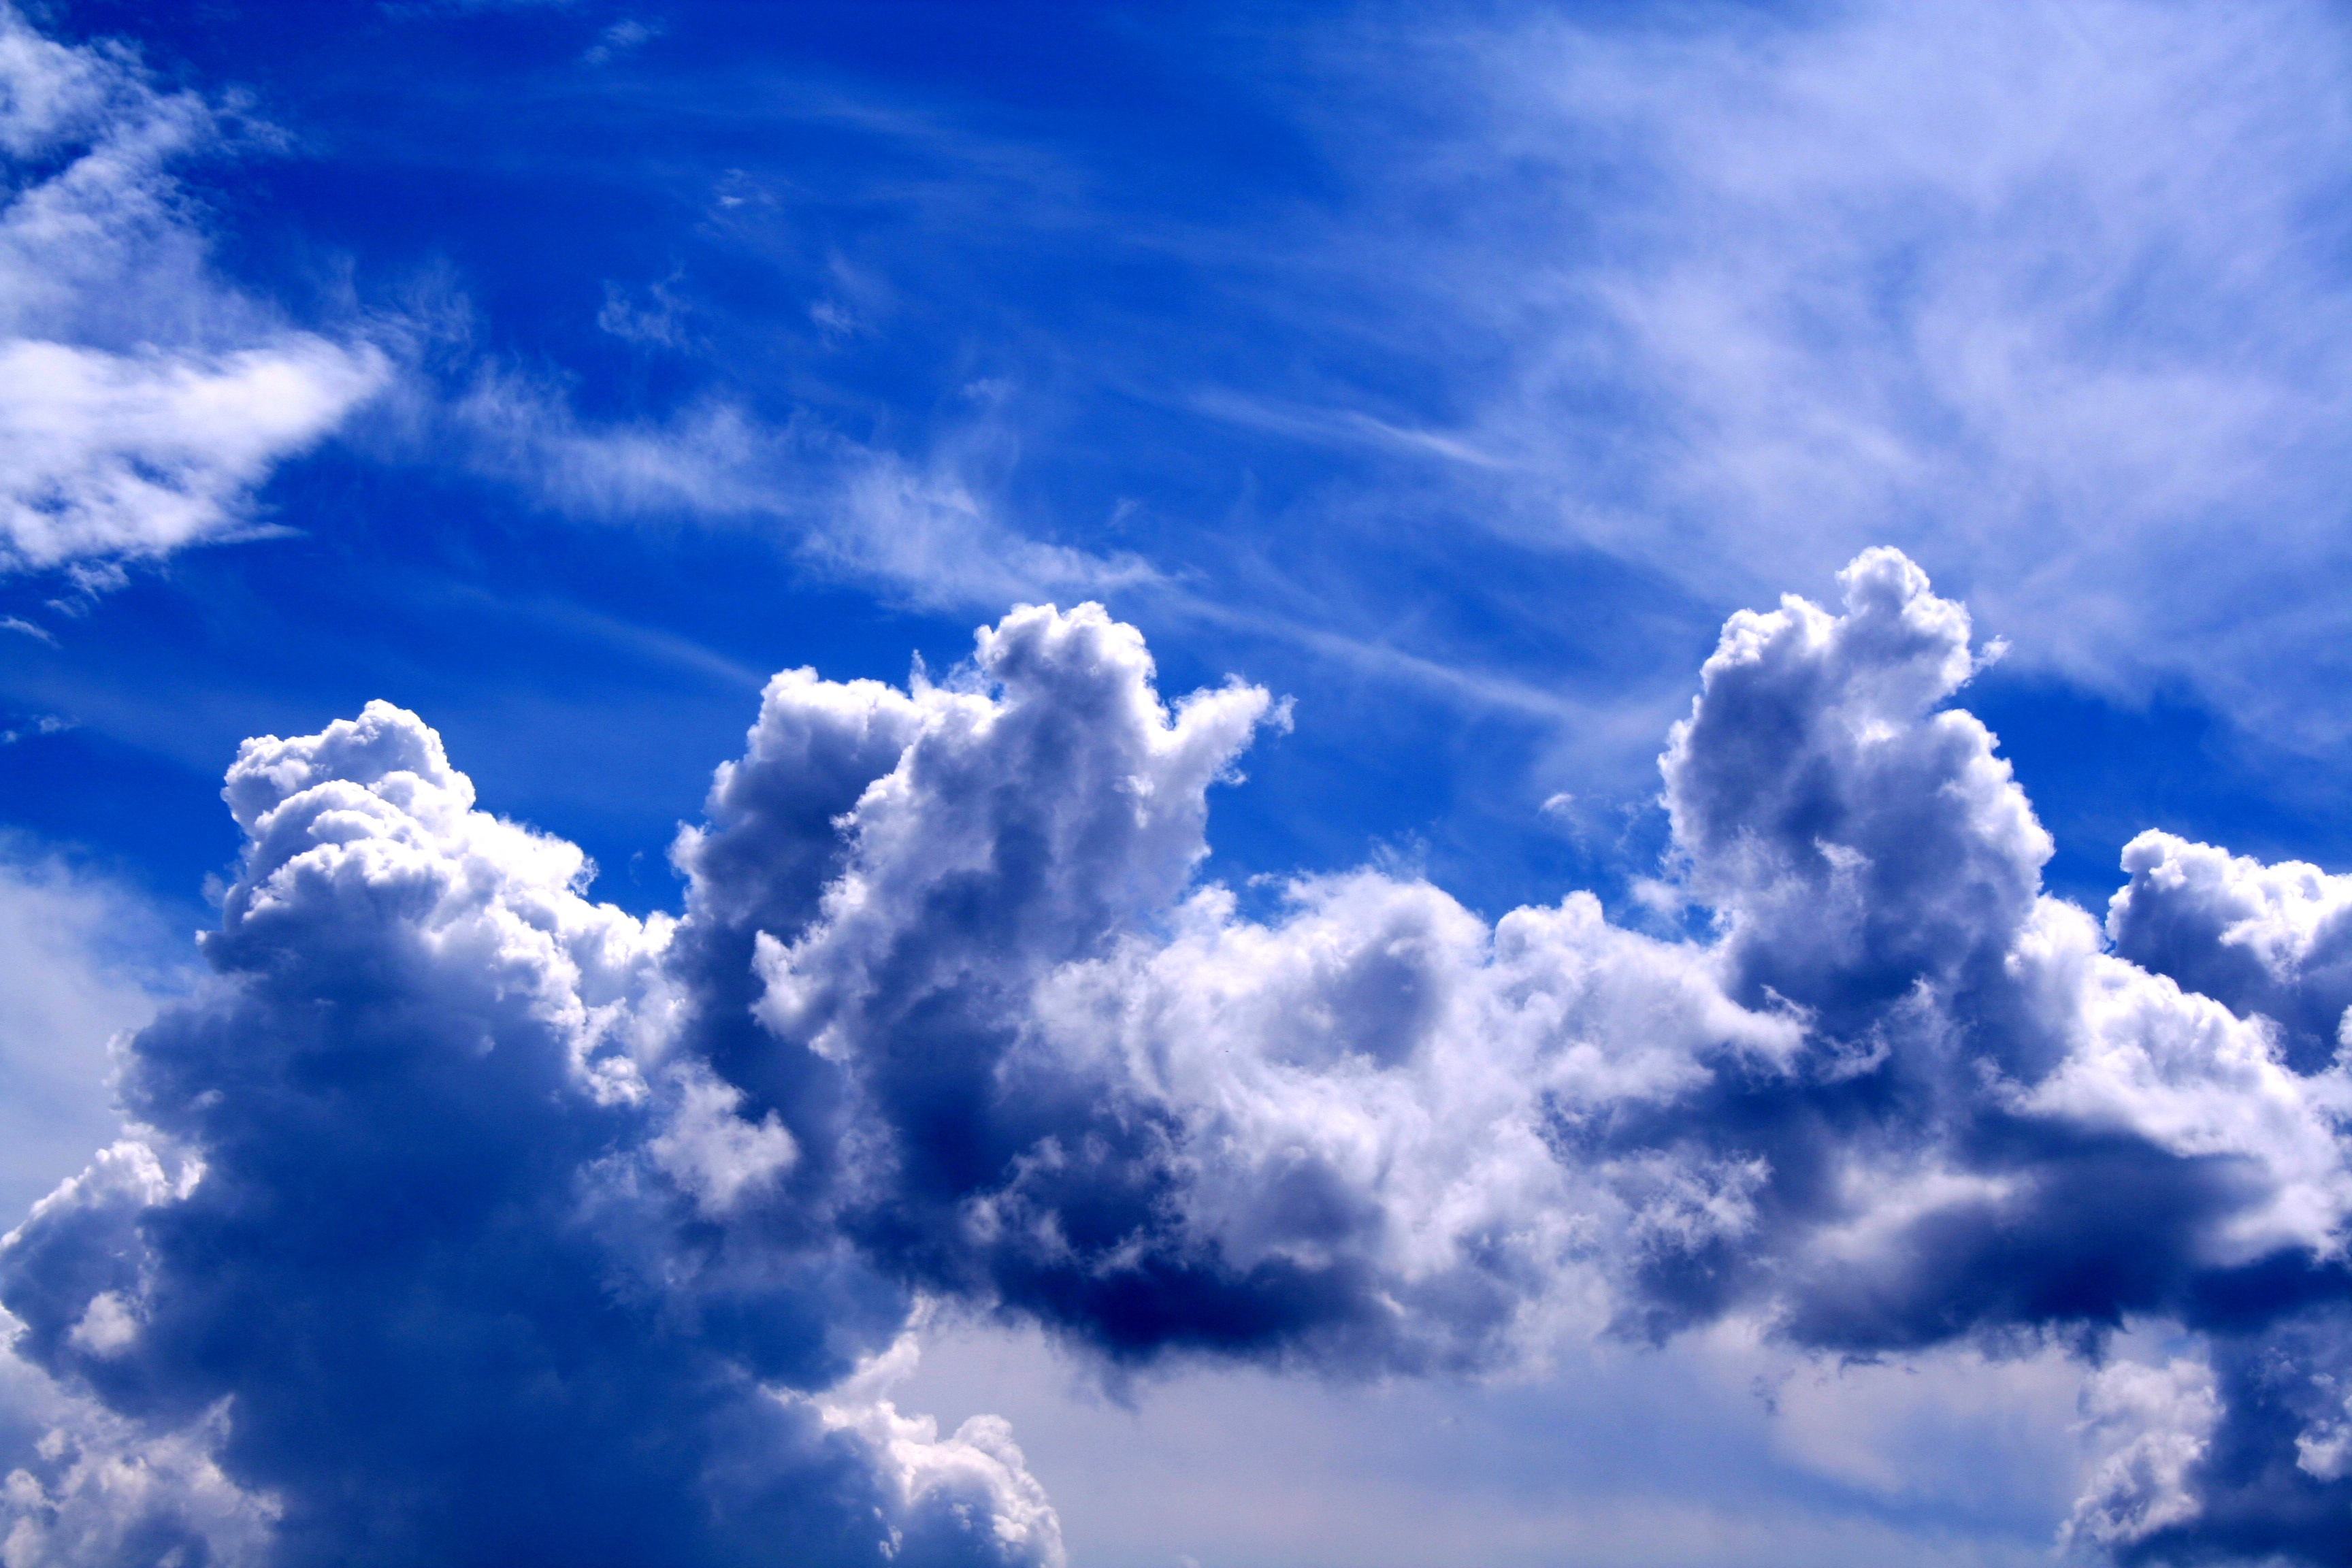 Clouds Wallpapers 3456x2304